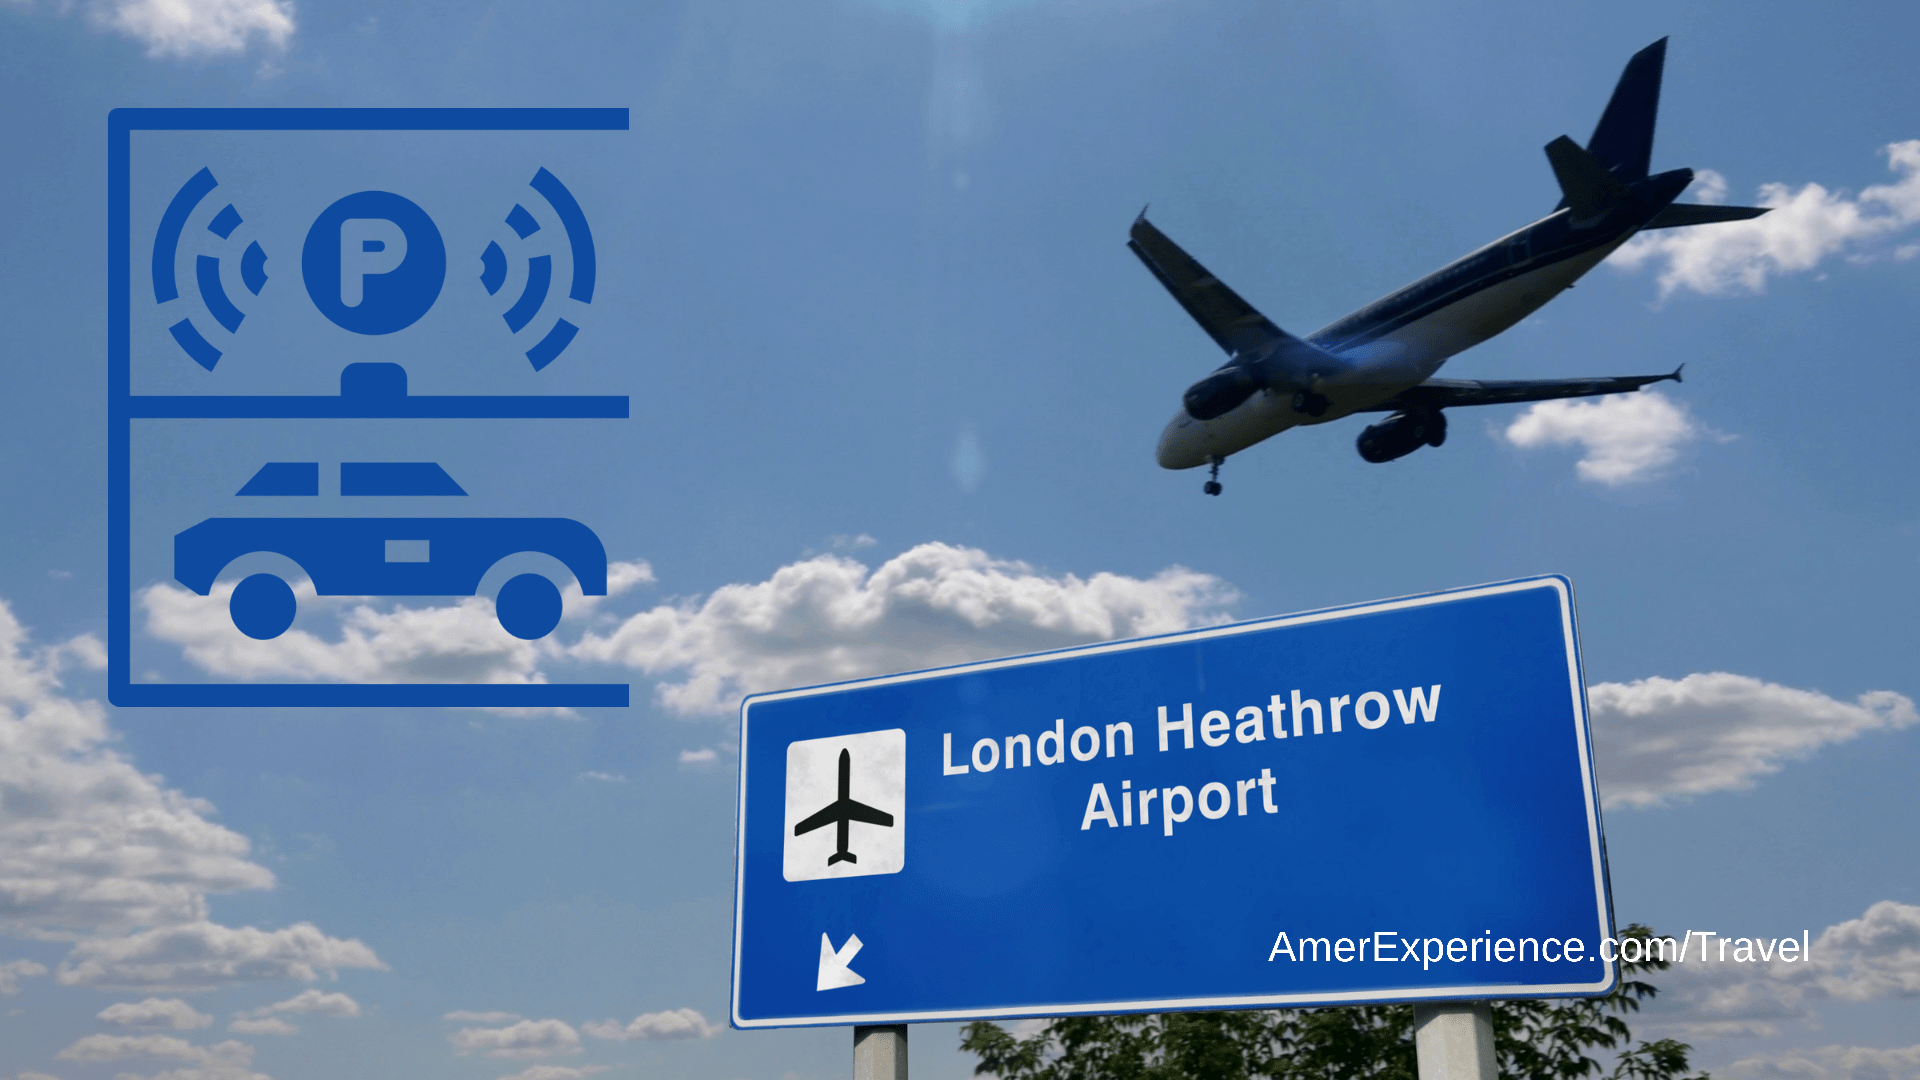 Britons will pay £105m a year in airport drop-off zone charges